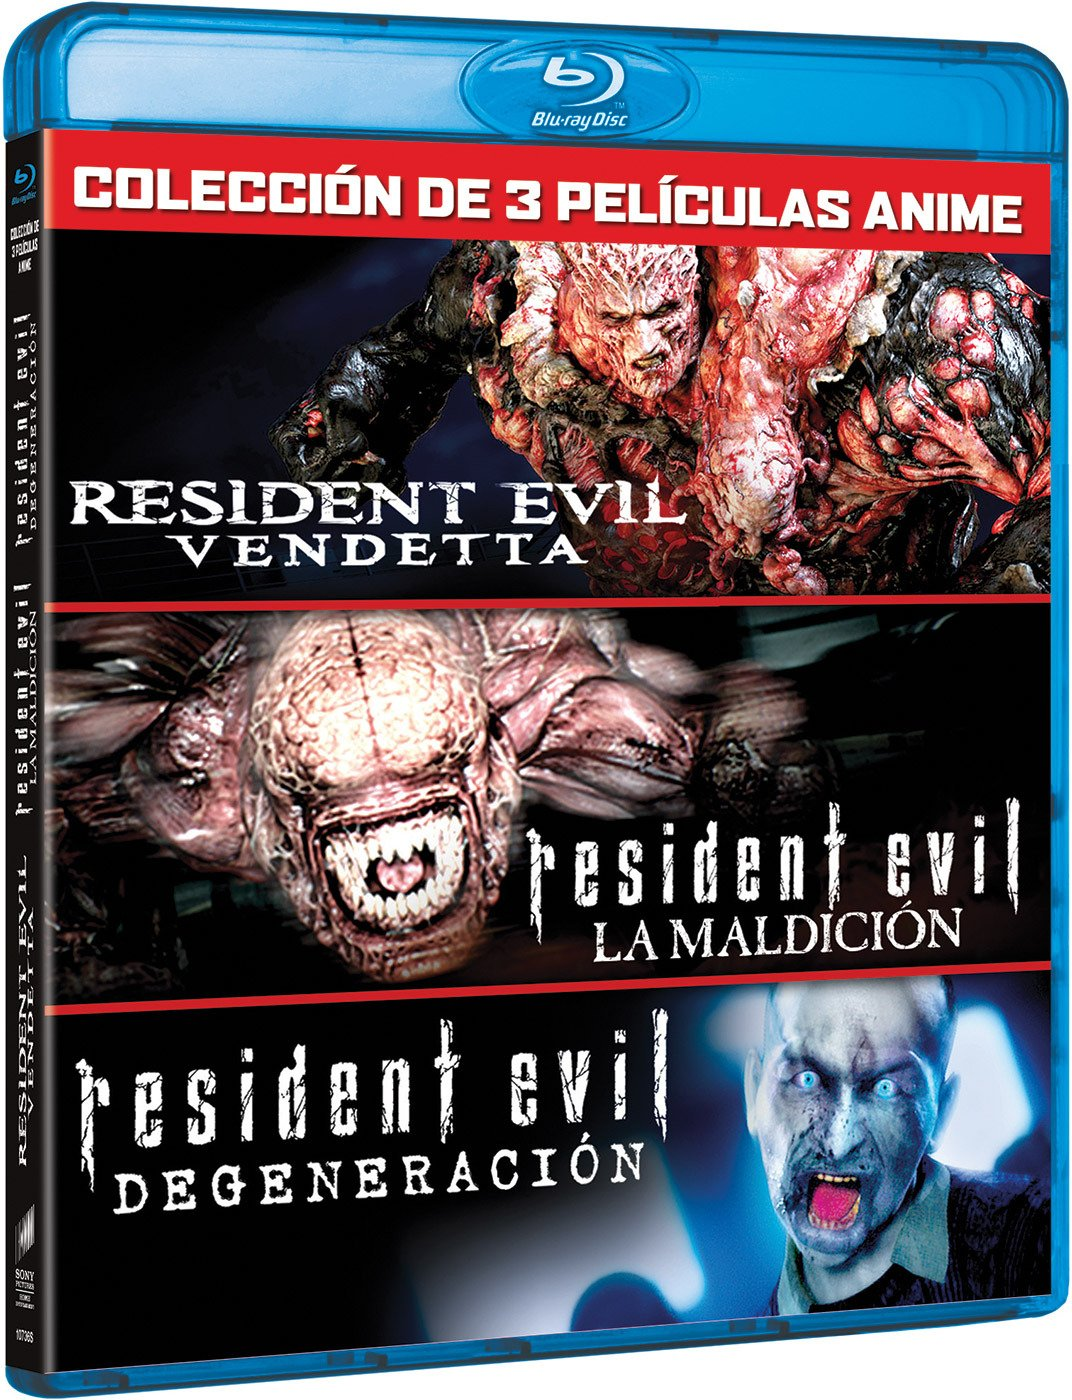 Pack Resident Evil: Vendetta (3 Peliculas) [Blu-ray]: Amazon.es ...